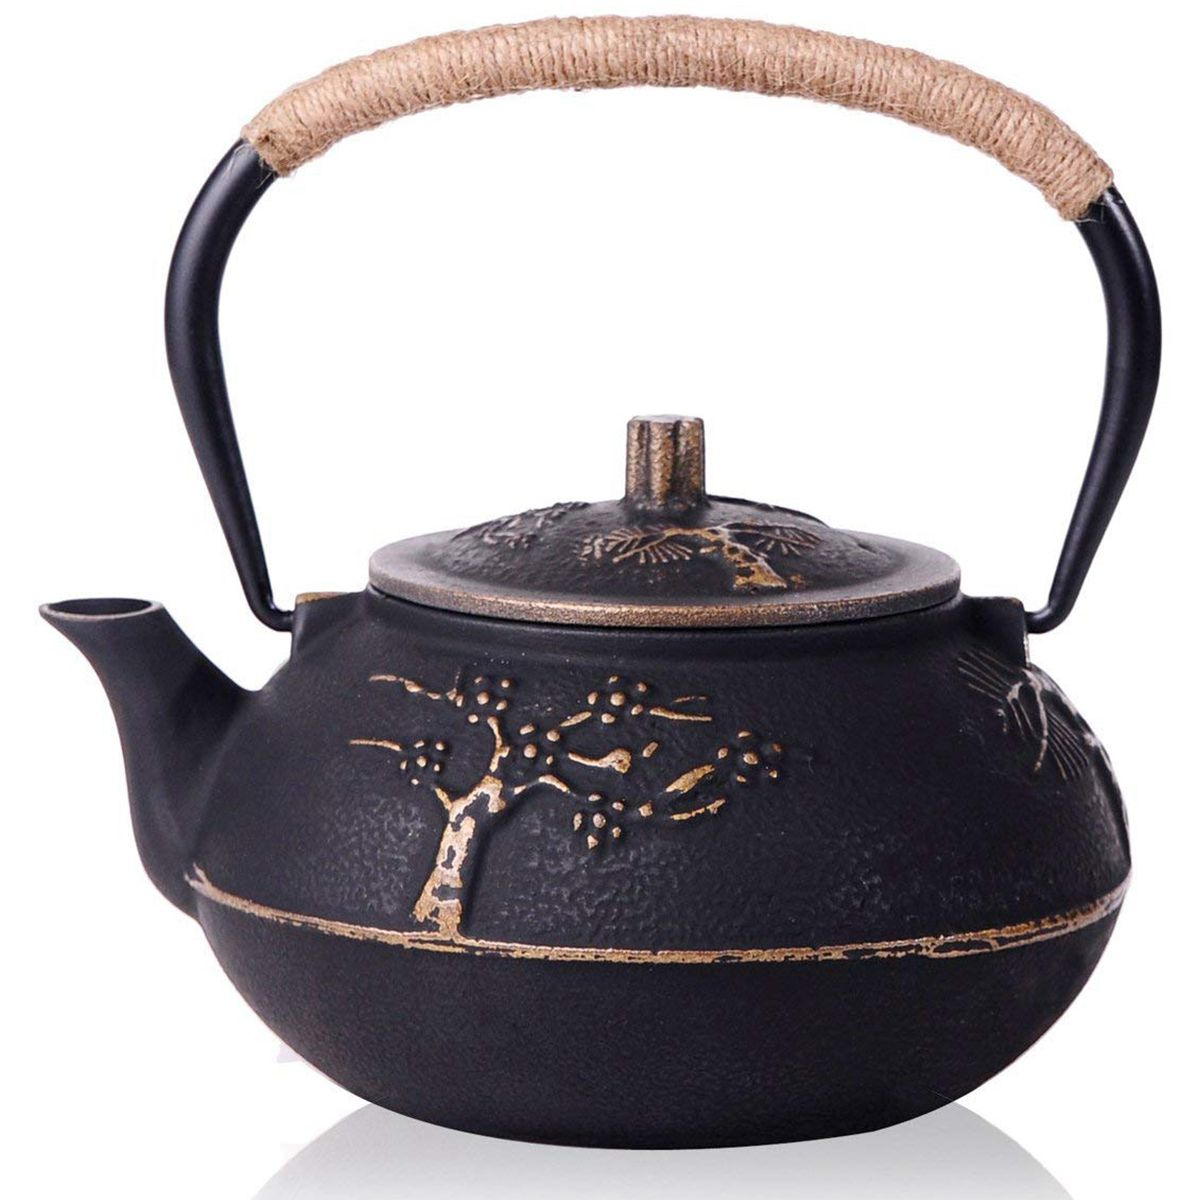 Japanese Cast Iron Teapot Kettle with Stainless Steel Infuser  Strainer  Plum Blossom 30 Ounce ( 900 ml ) maquina de coser de mano